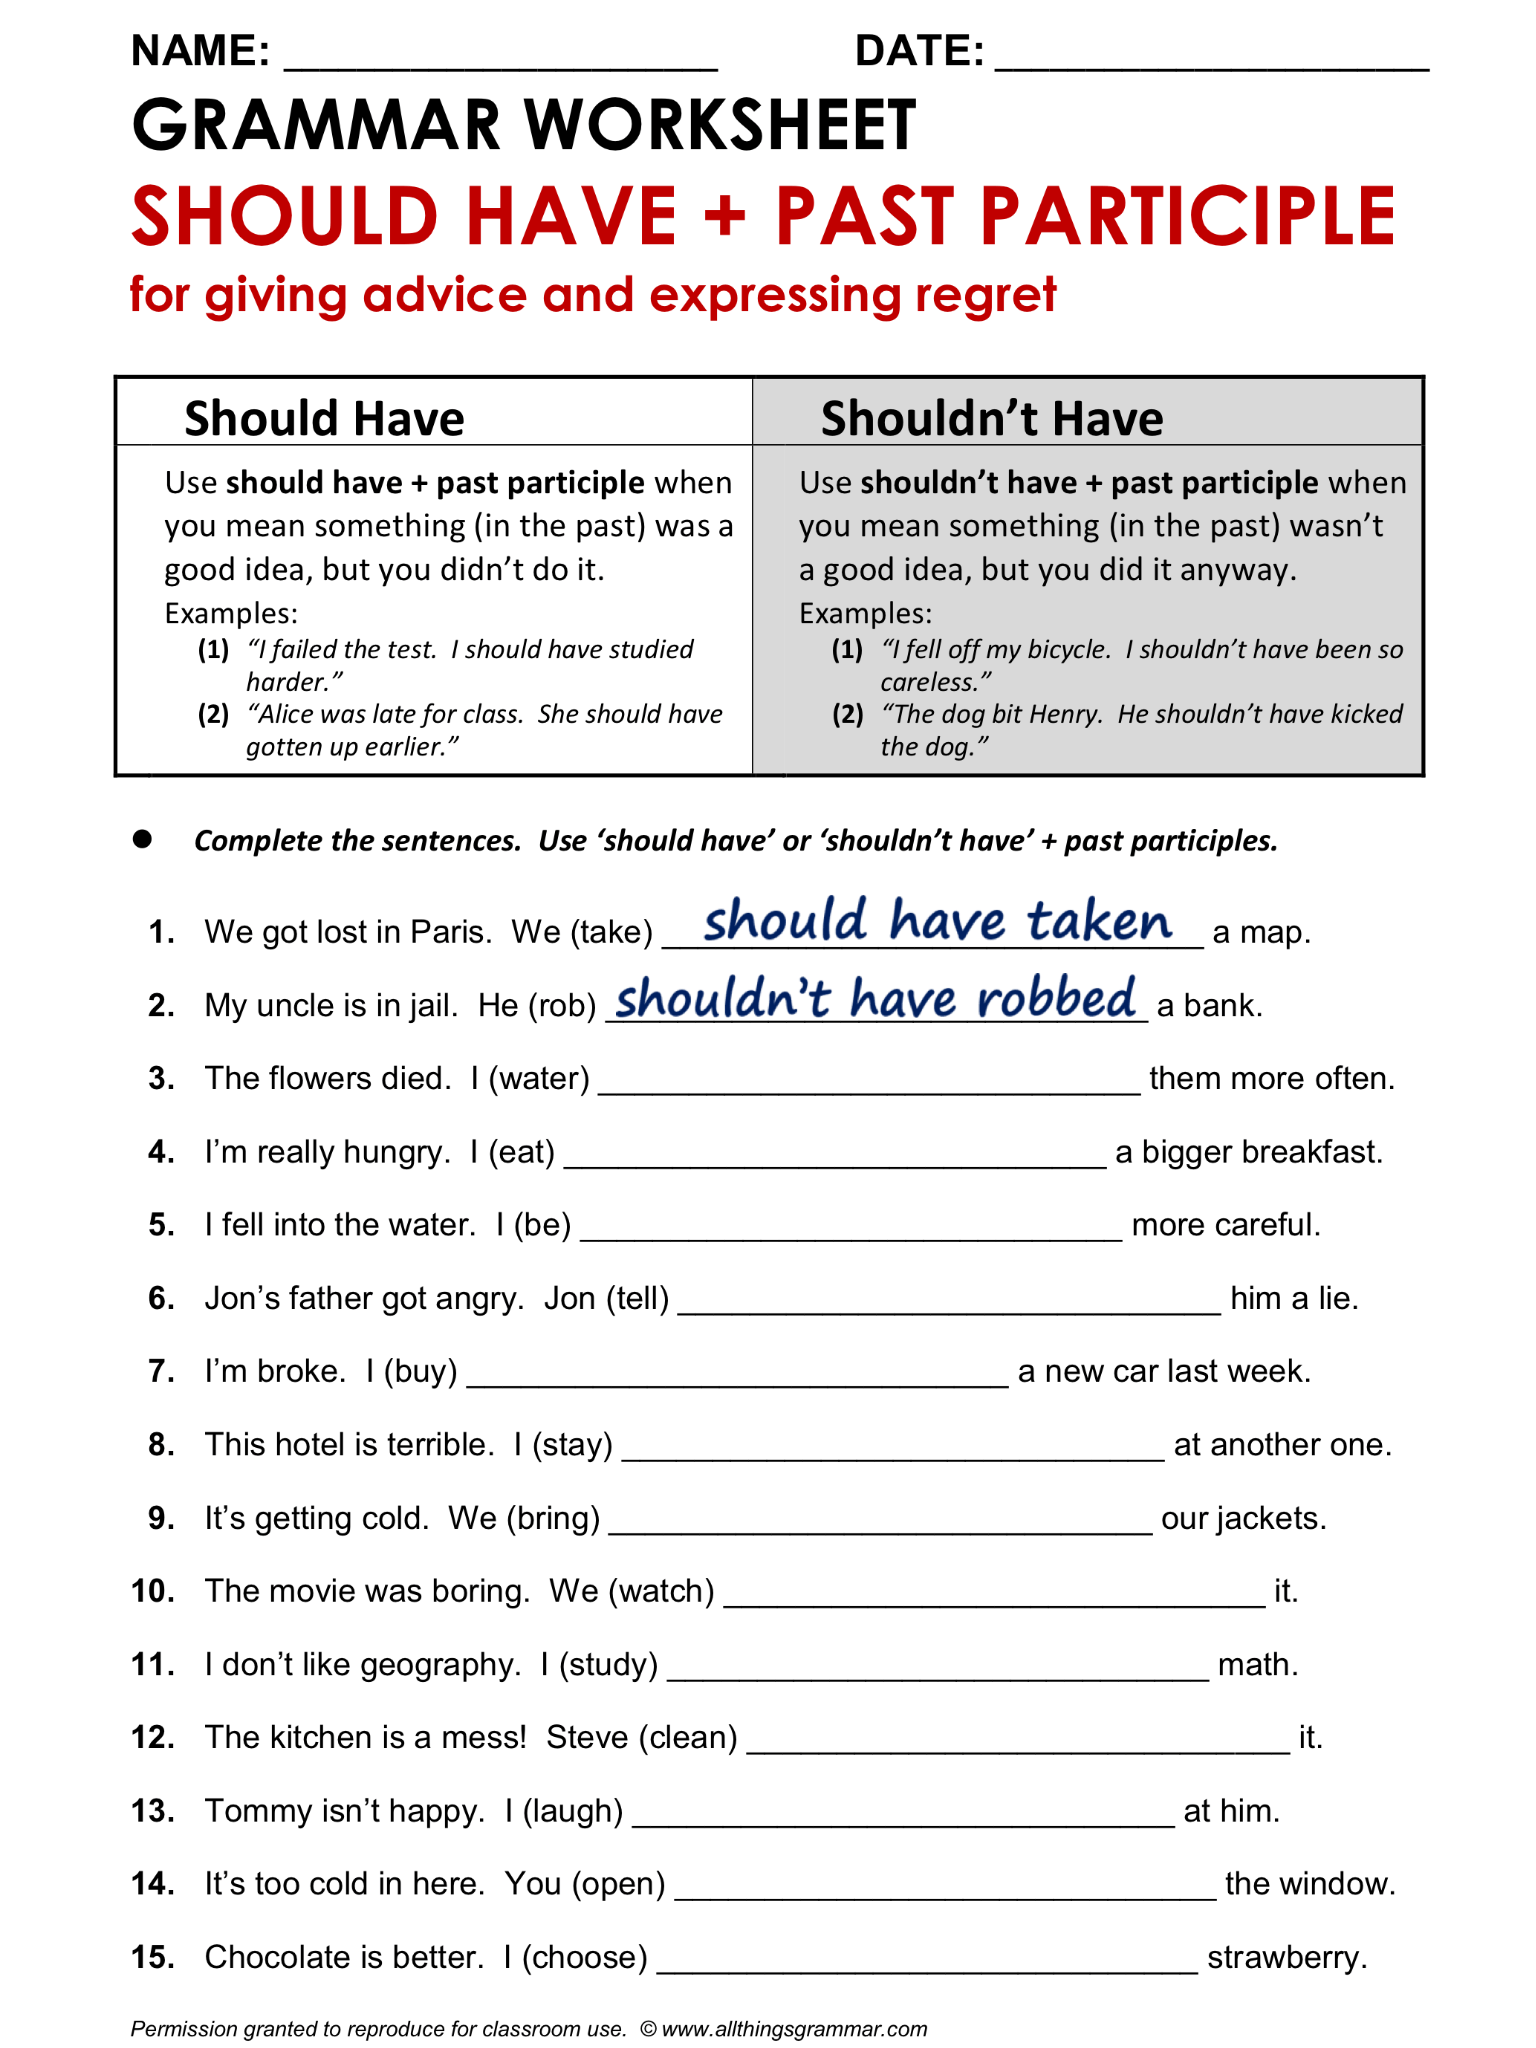 English Grammar Worksheet Should Have Past Participle 1